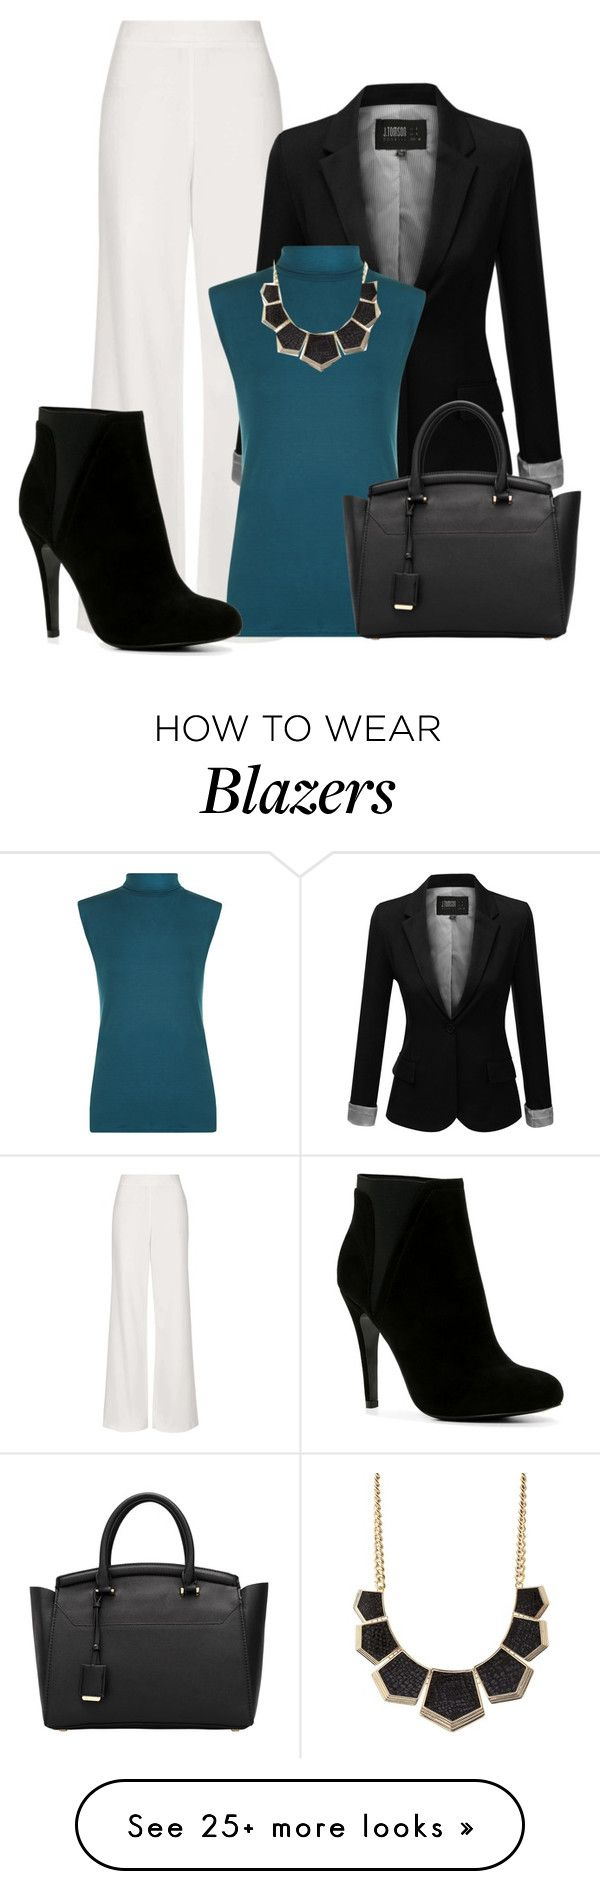 """""""Work Wardrobe 6"""" by vanessa-bohlmann on Polyvore featuring Topshop, J.TOMSON, WearAll, ALDO and Charlotte Russe"""